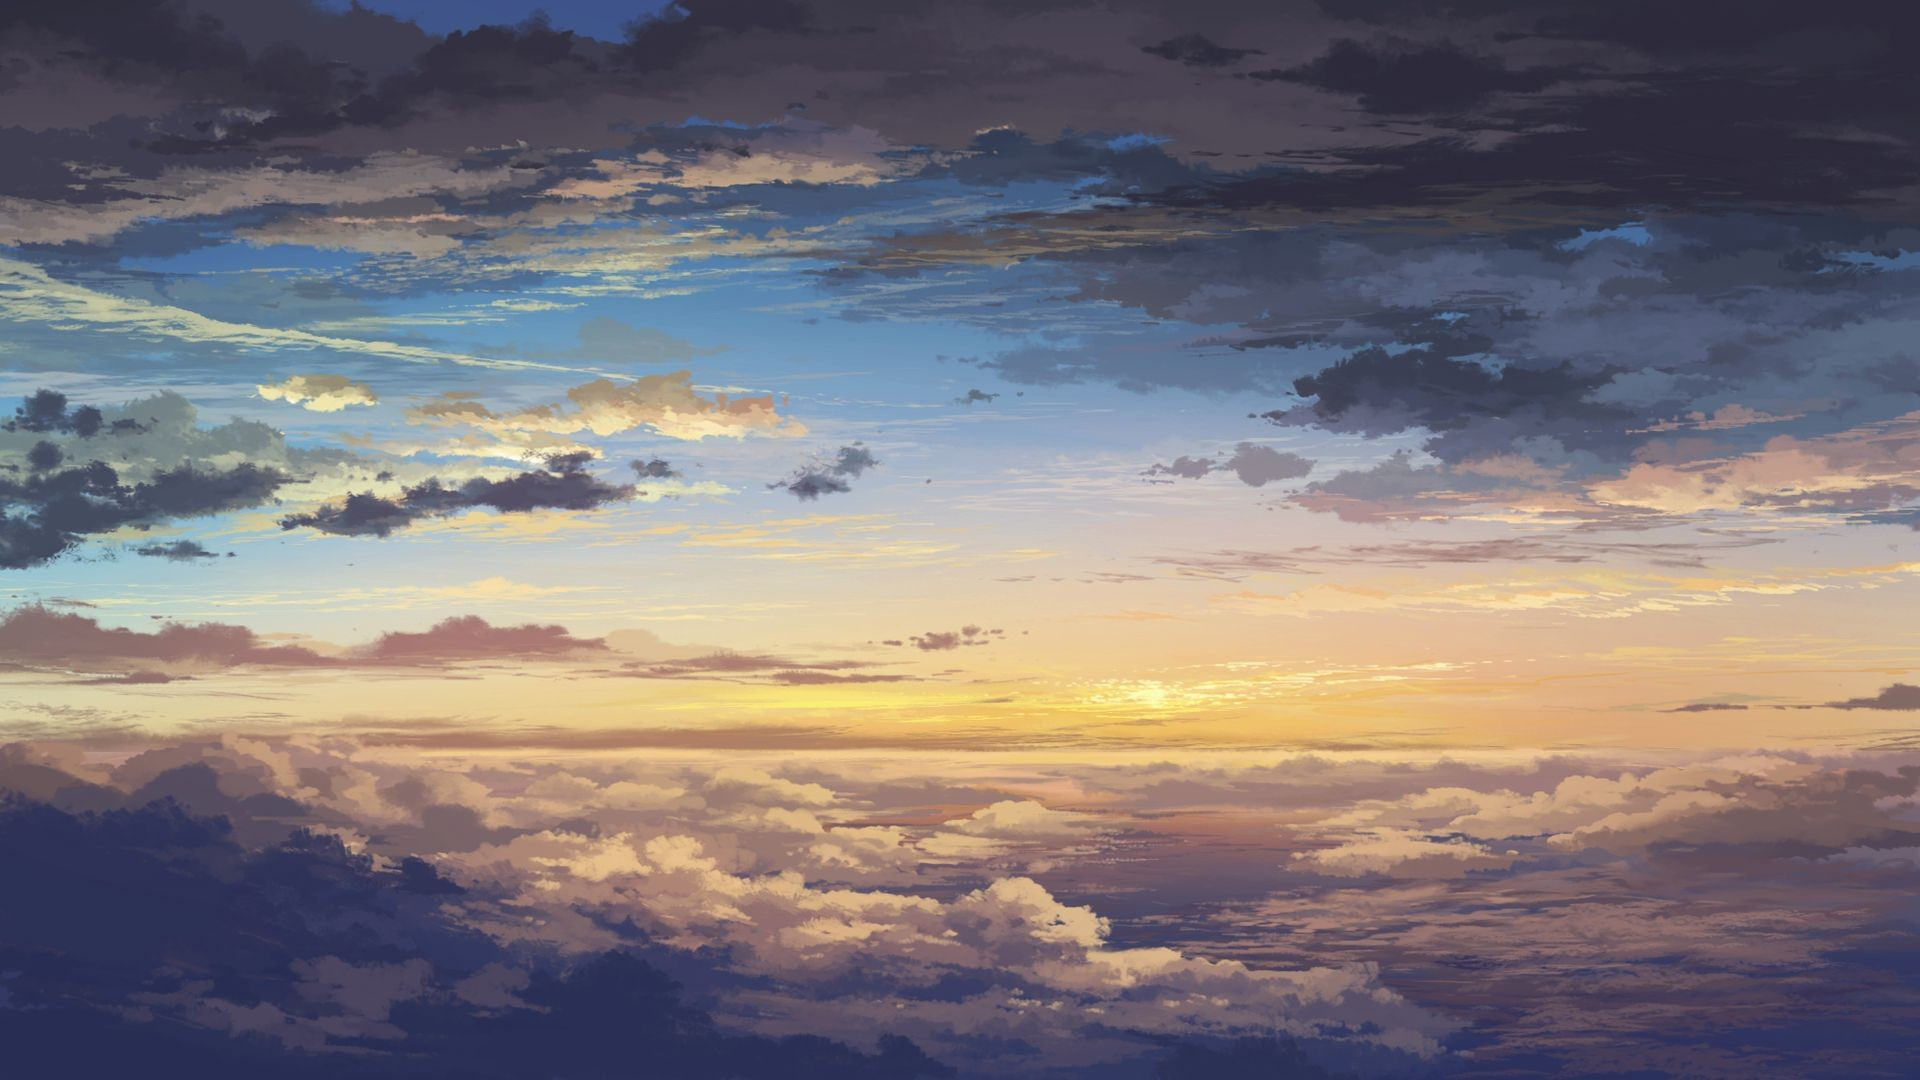 General 1920x1080 artwork sky clouds nature horizon anime sunlight